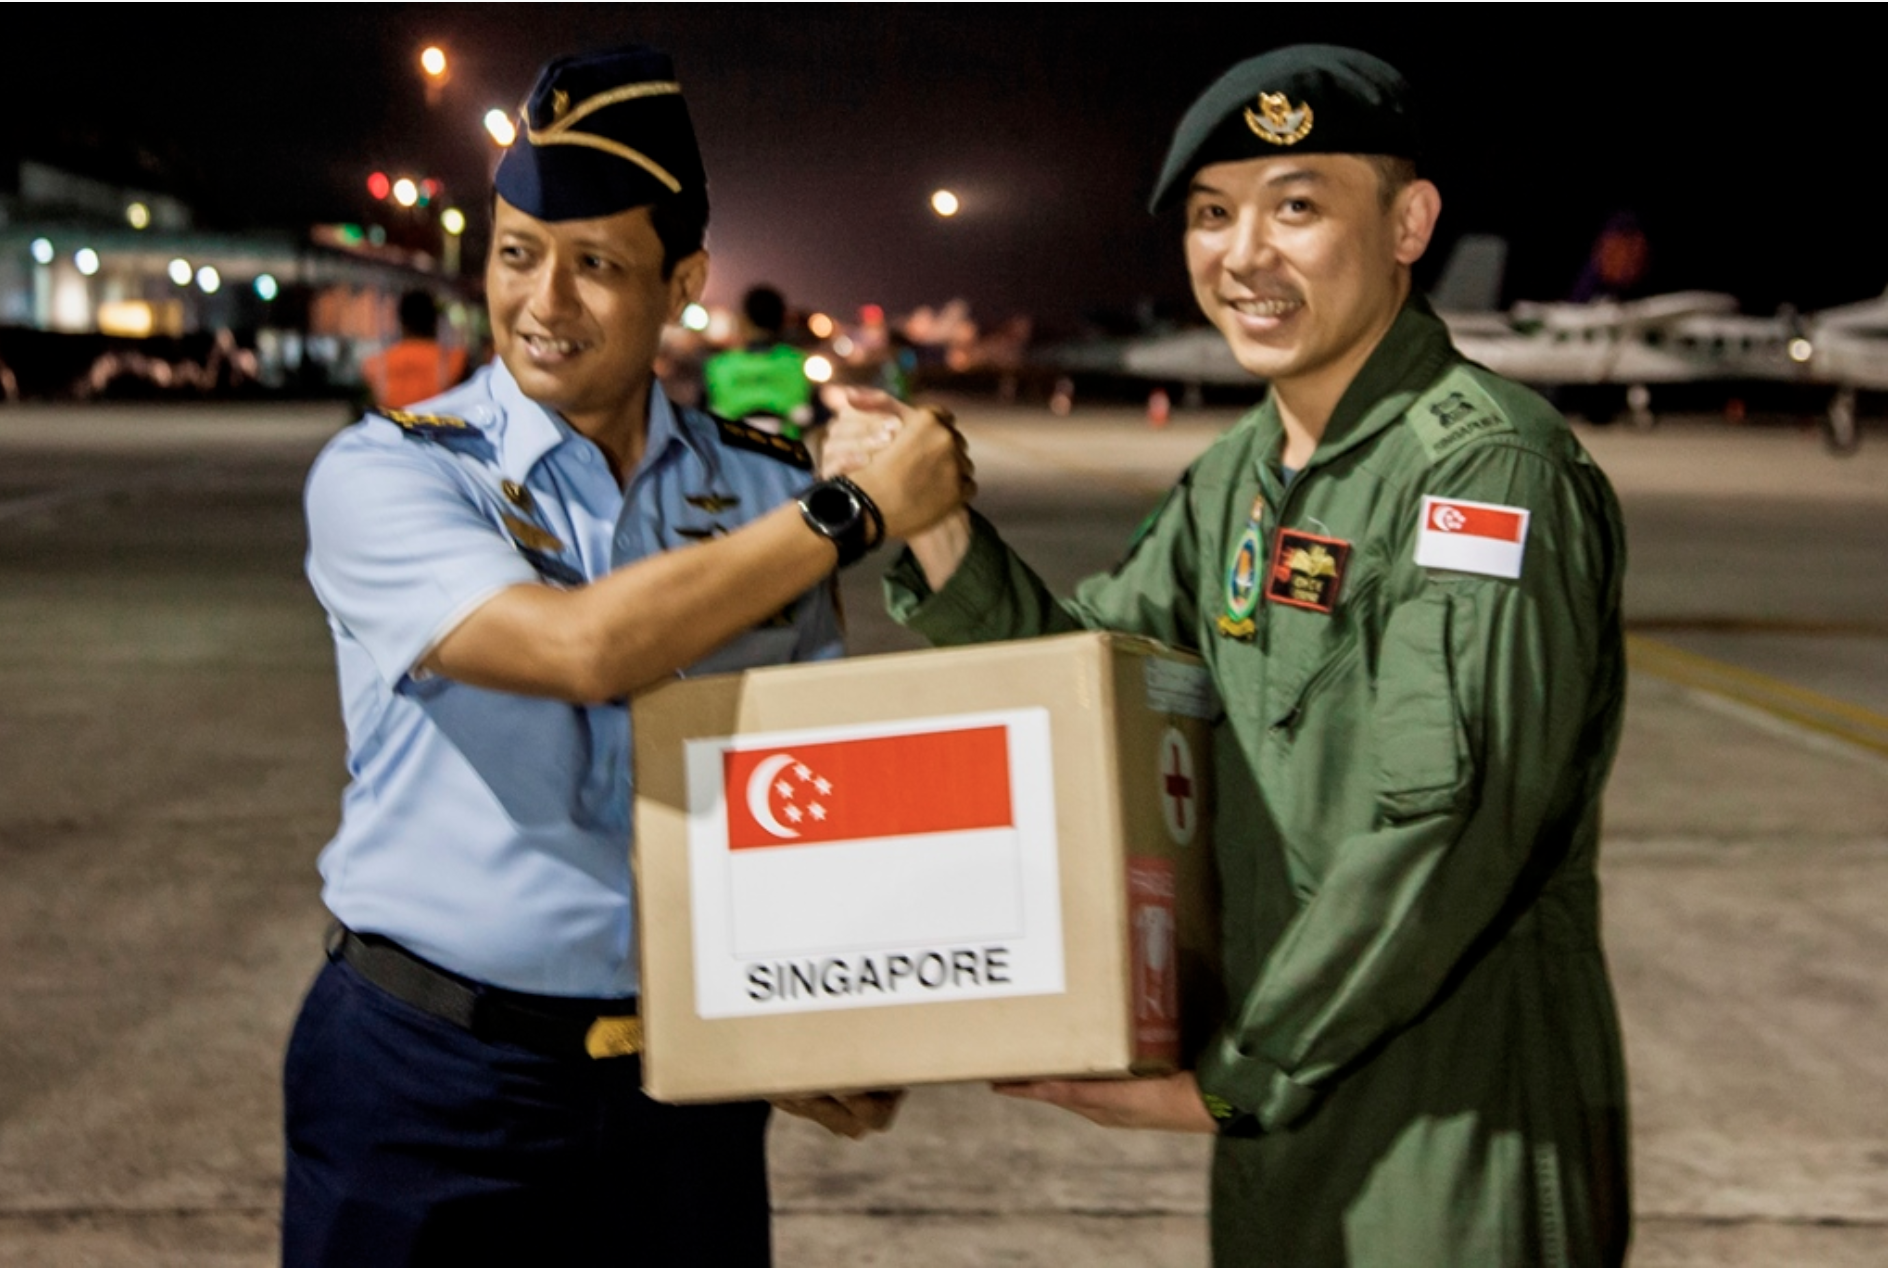 The Singapore Armed Forces Mission Commander, Lieutenant Colonel (LTC) Oh Chun Keong (right) handing over the relief package to LTC Ali Sudibyo, of the Indonesian Armed Forces (left) at Balikpapan Airport, Indonesia. Photo courtesy: Mindef